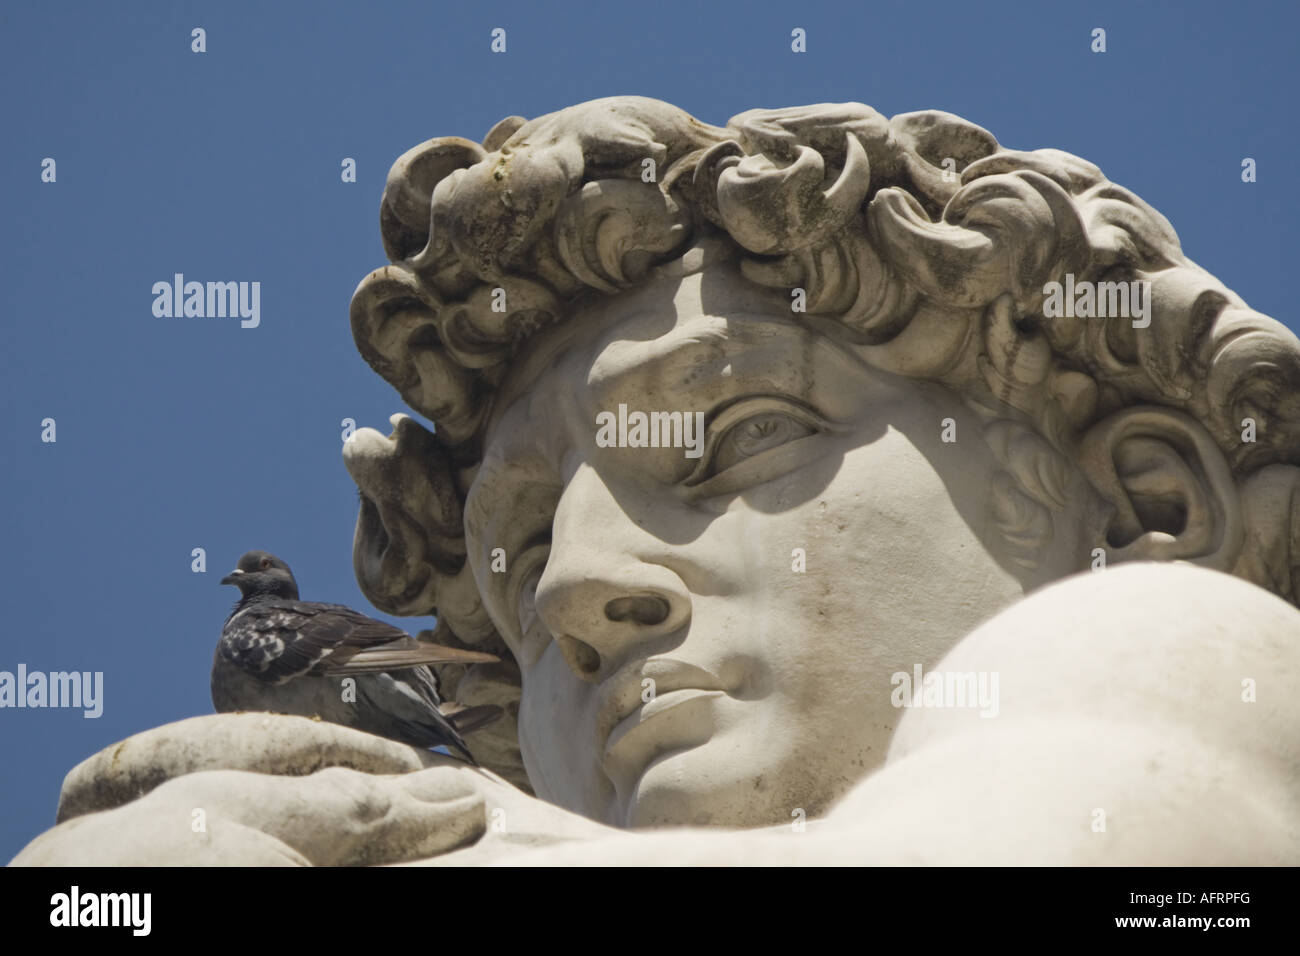 renaissance sculpture stockfotos renaissance sculpture bilder alamy. Black Bedroom Furniture Sets. Home Design Ideas